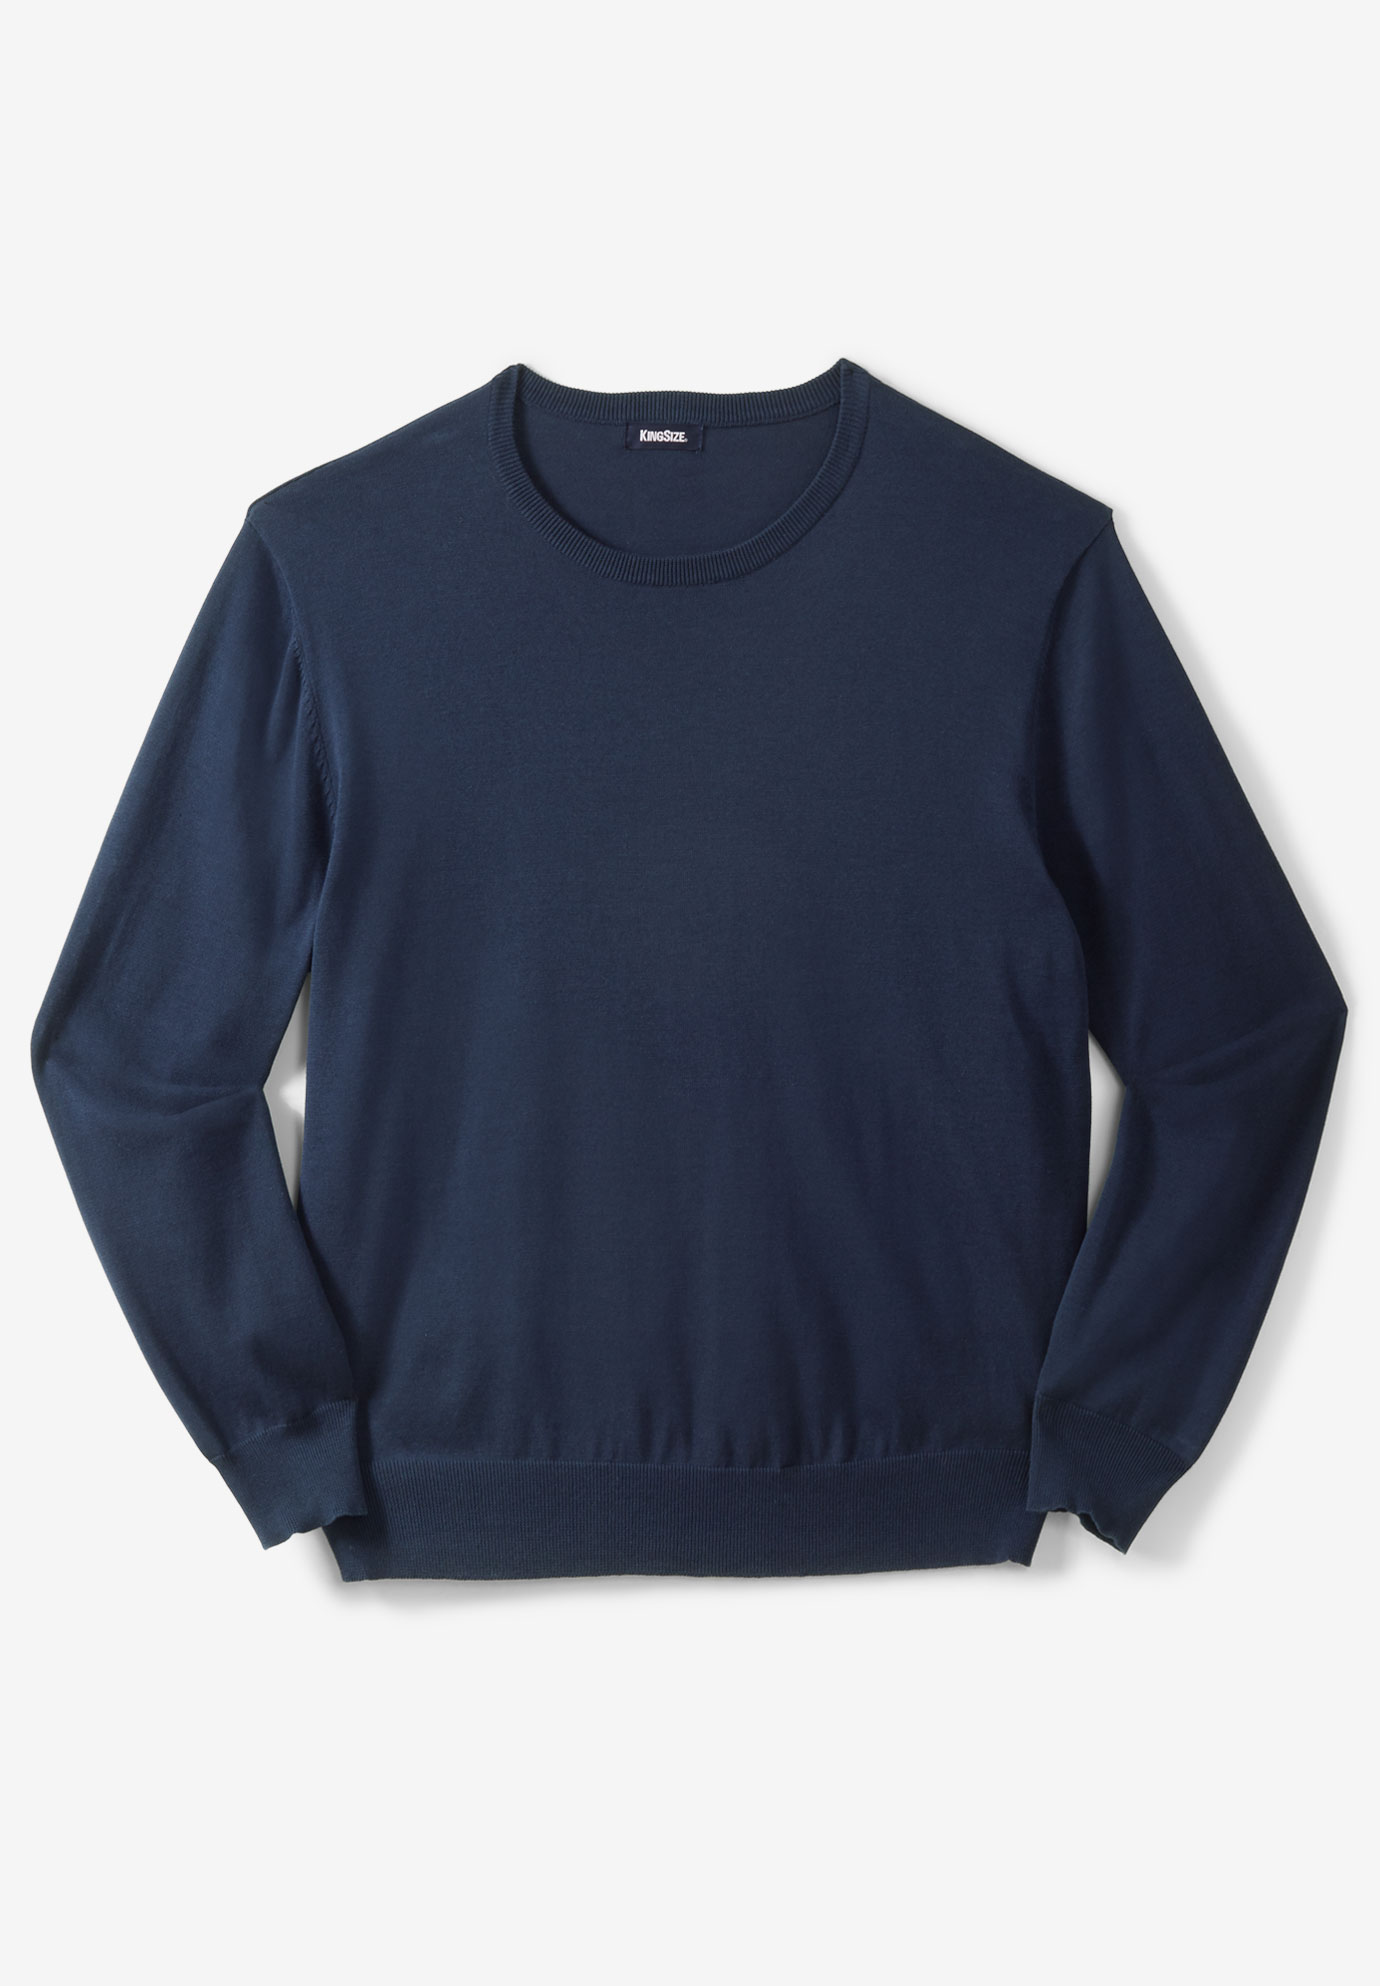 Pima Crewneck Sweater,